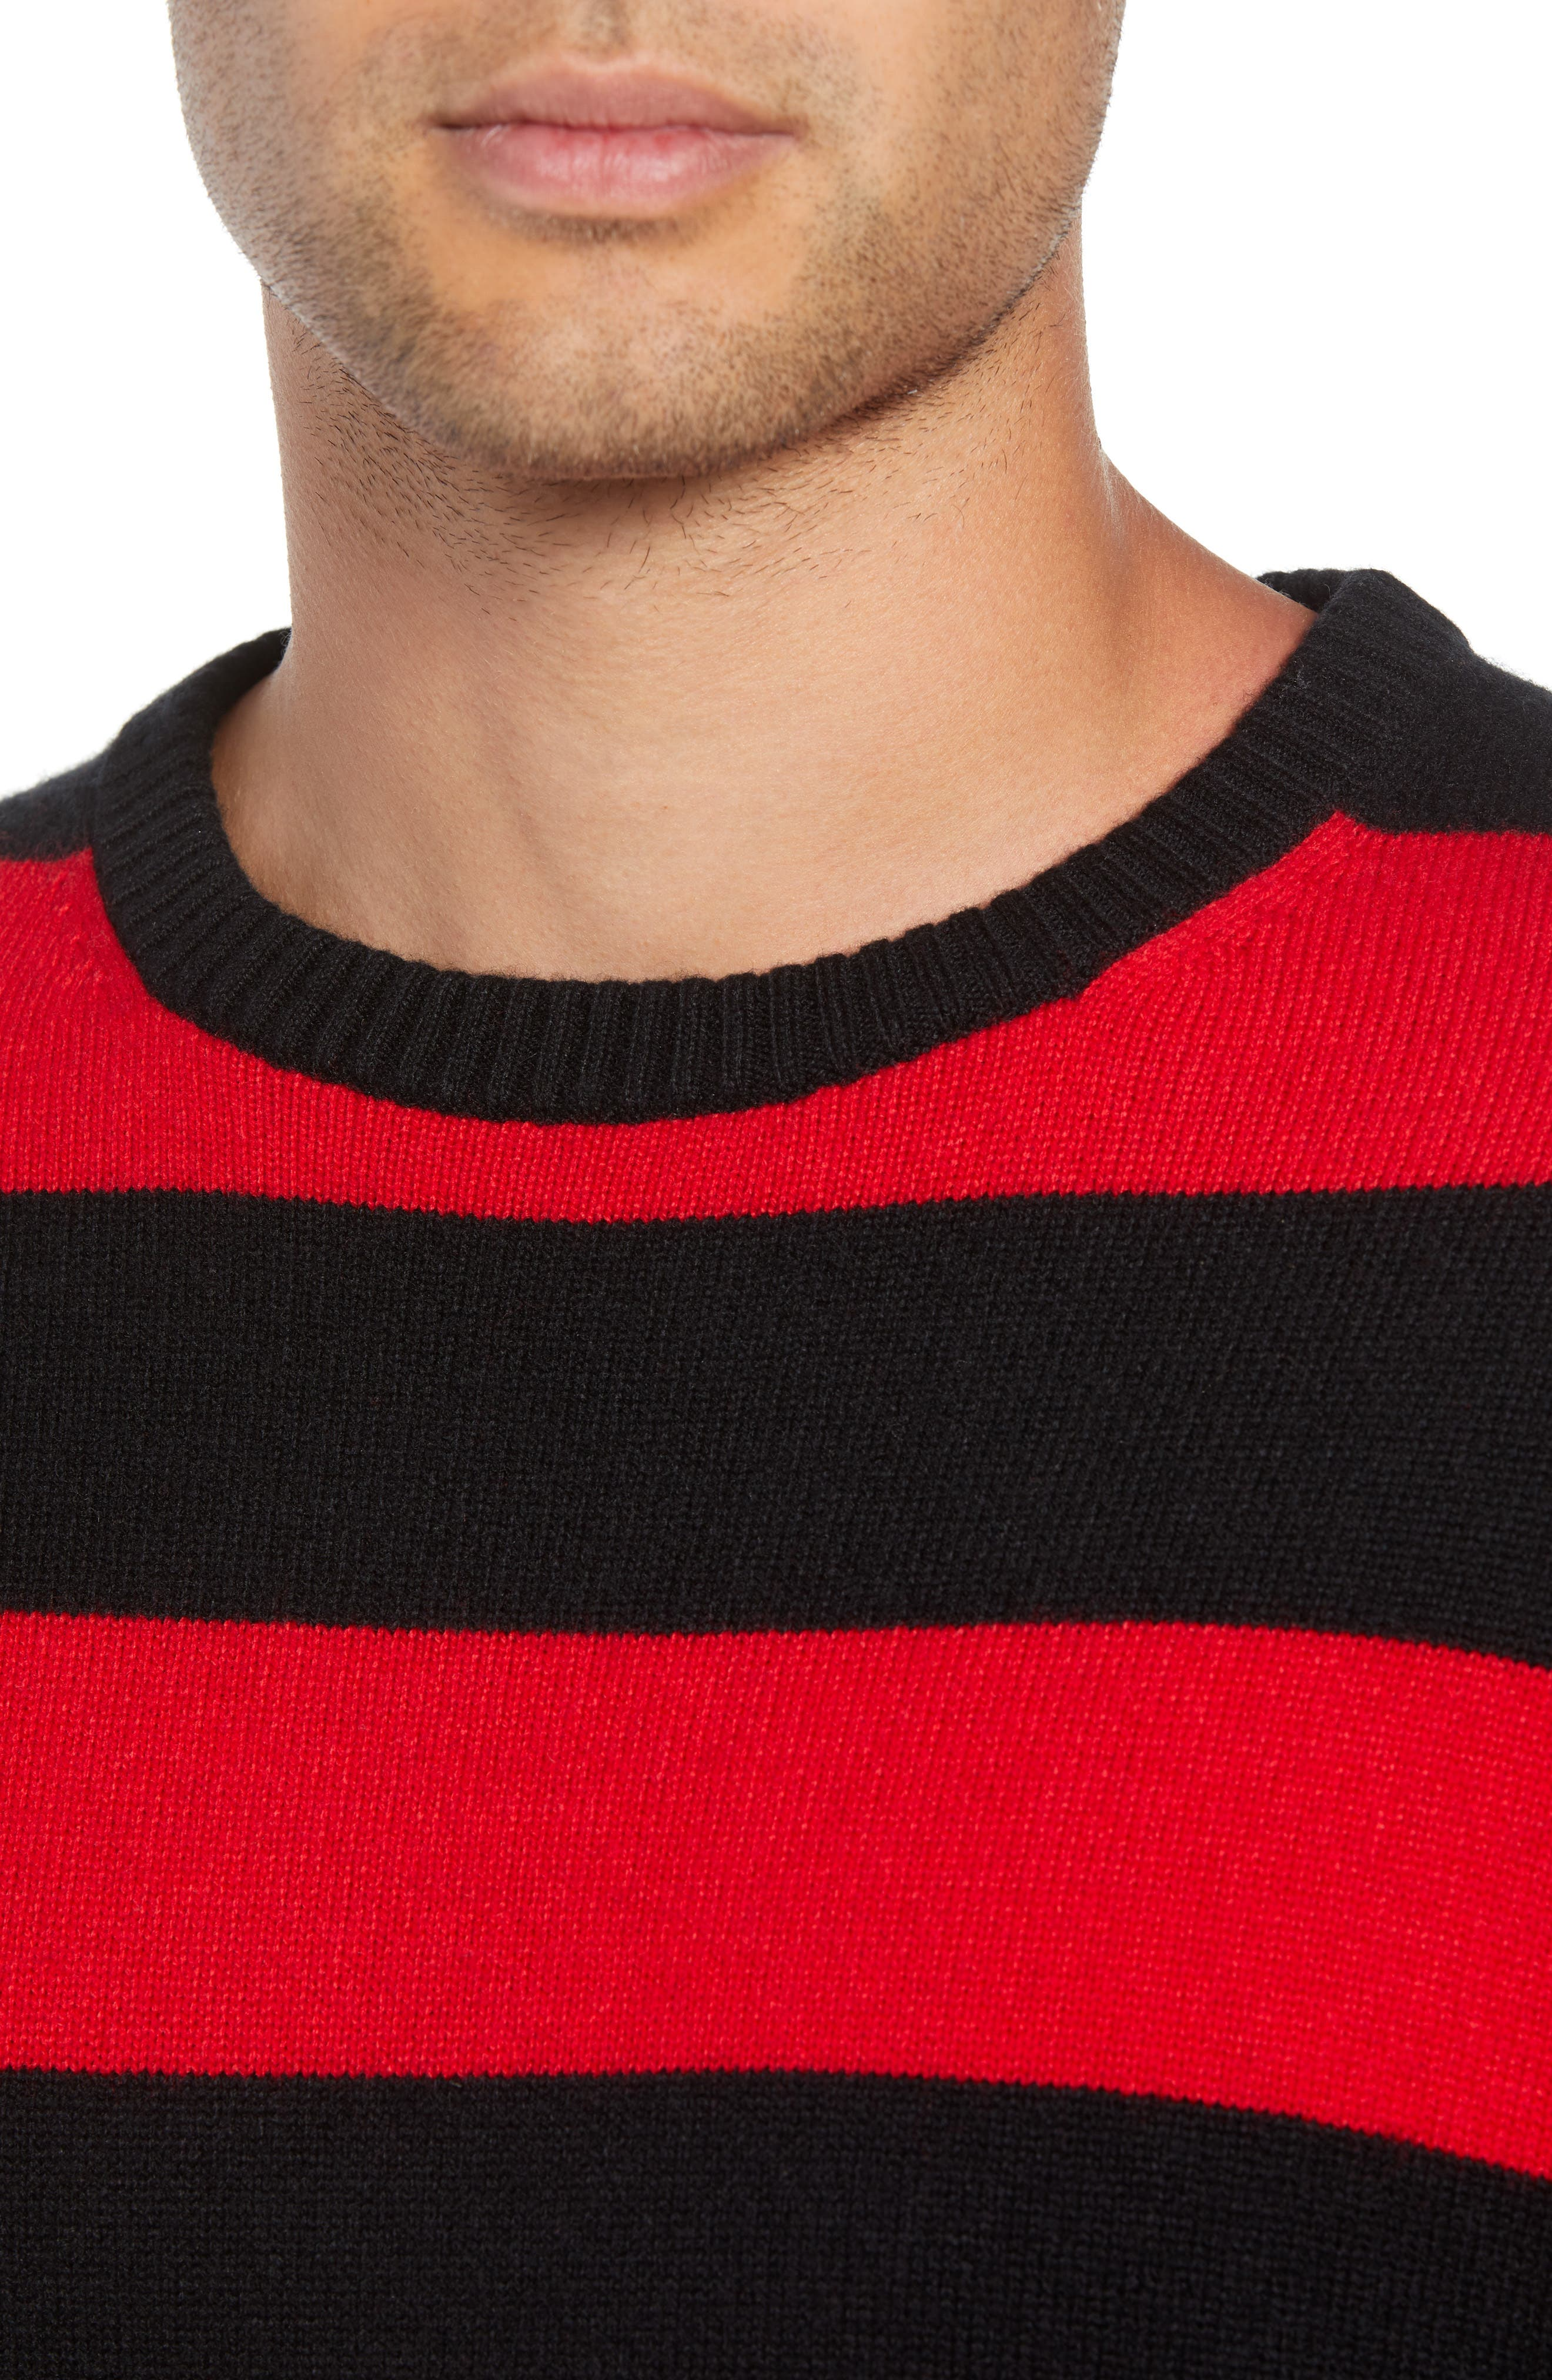 Shredded Stripe Sweater,                             Alternate thumbnail 4, color,                             RED/ BLACK